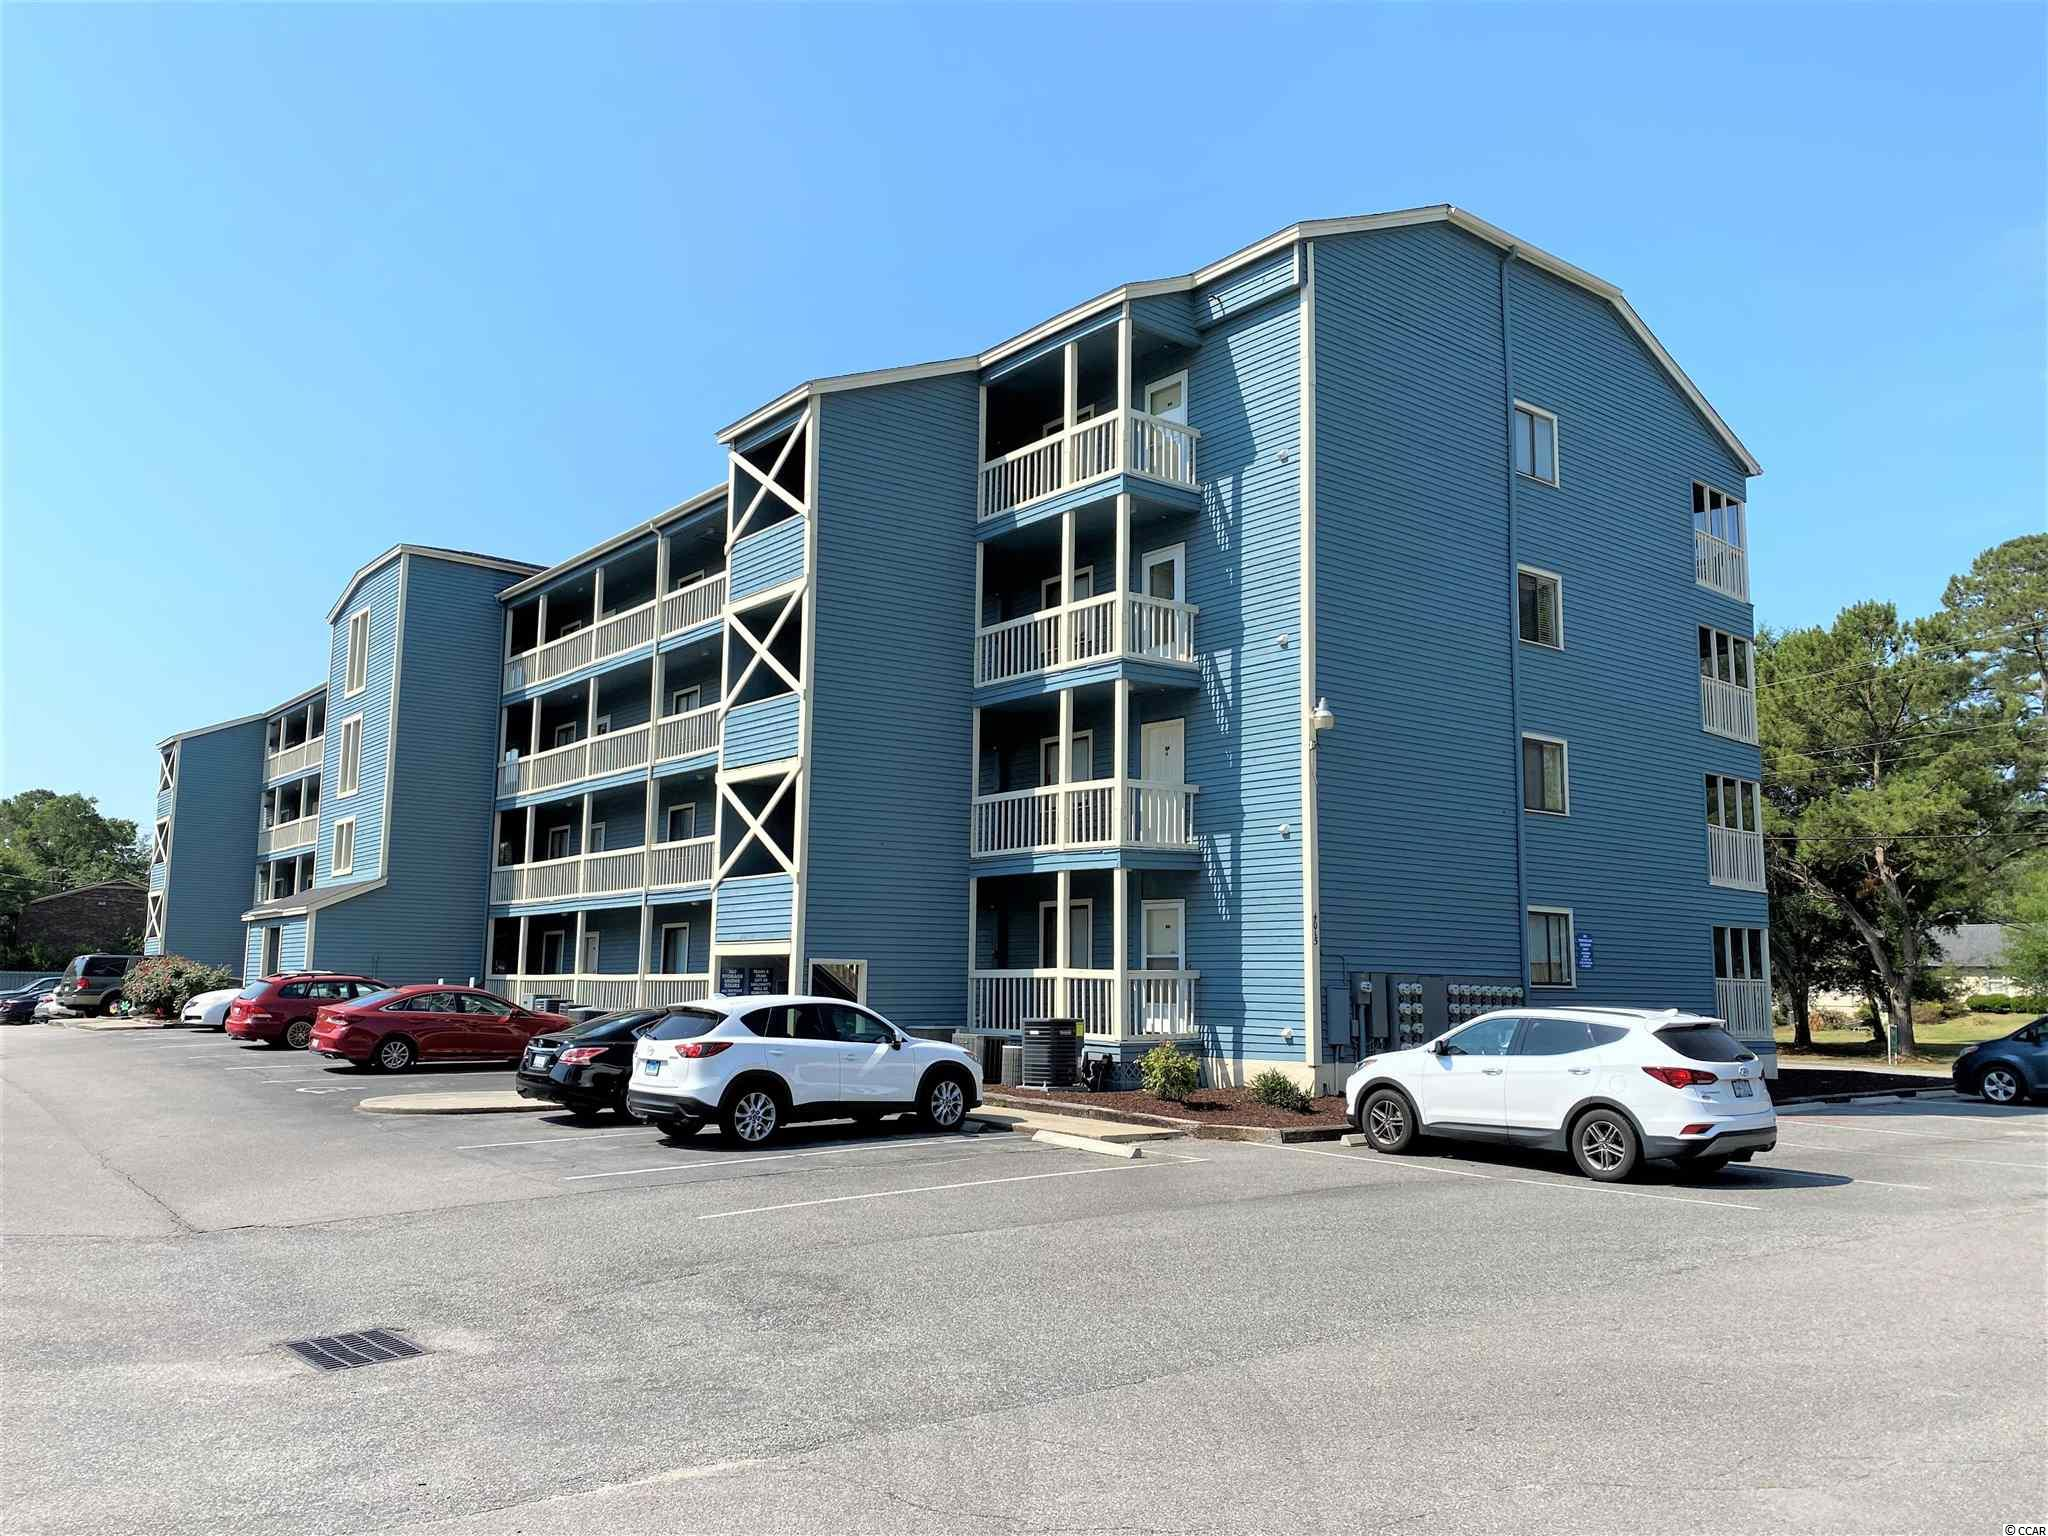 TOP FLOOR condo with an ELEVATOR in the building! The back porch has been turned into a FOUR SEASONS ROOM and the OPEN CONCEPT floorplan gives the home a spacious feel! This has been a very WELL MAINTAINED residence in a very convenient location close to beautiful golf courses and less than 10 minutes to the Cherry Grove Beach! You've got EXTRA STORAGE space across from the elevator. The community pool offers a nice place to relax, and there is bicycle storage on-site.